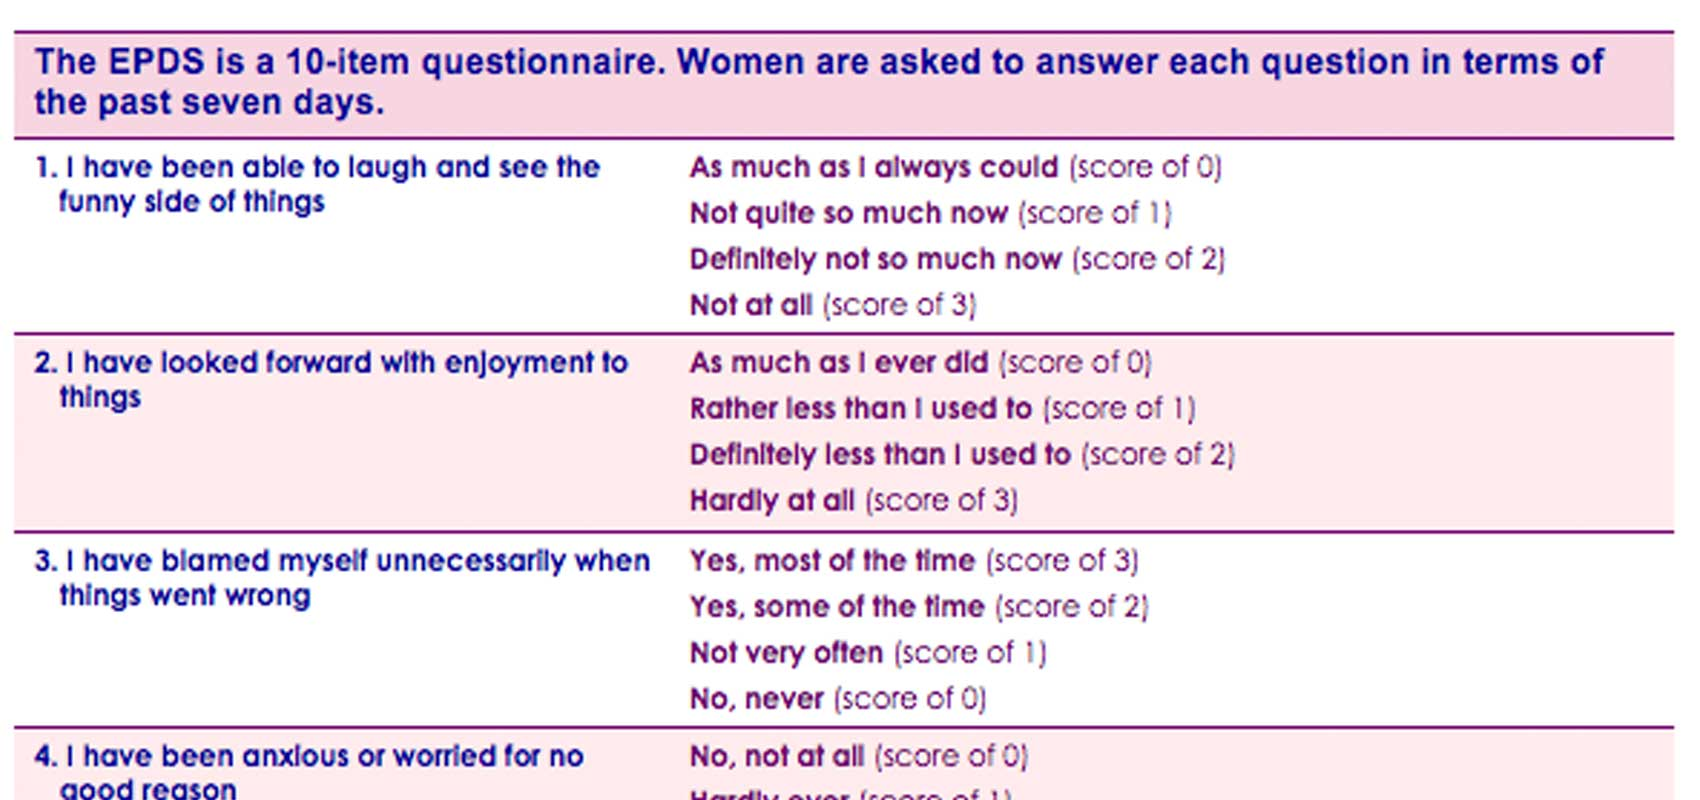 Image for Using the Edinburgh Postnatal Depression Scale (EPDS) as a Screening Tool